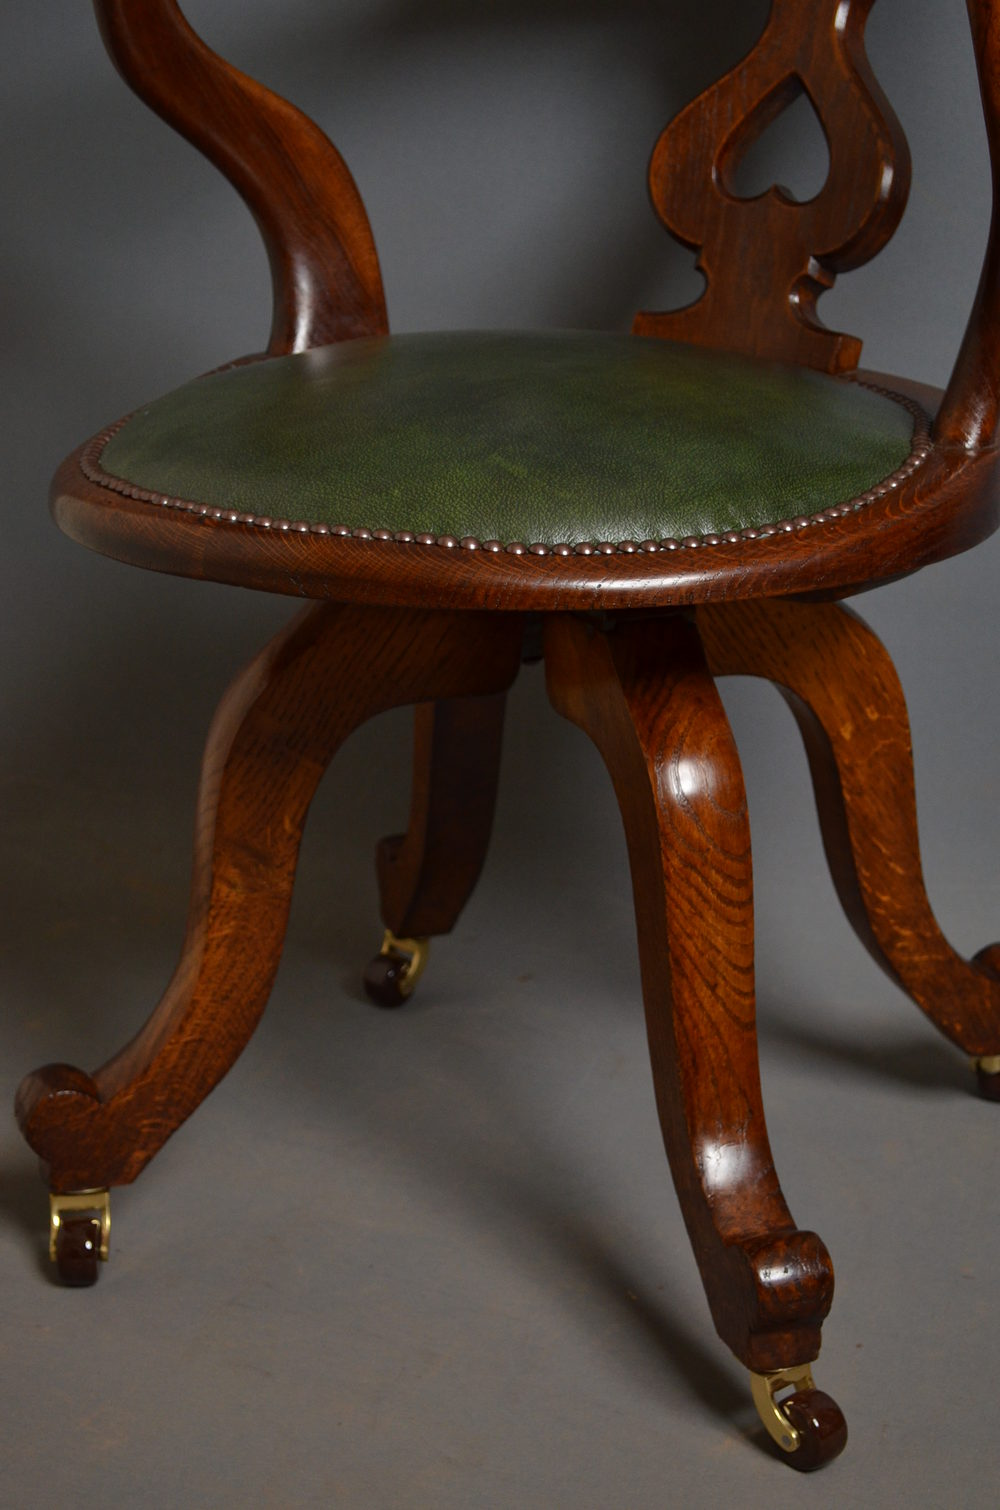 revolving chair and folding umbrella victorian office by edwards & roberts - antiques atlas